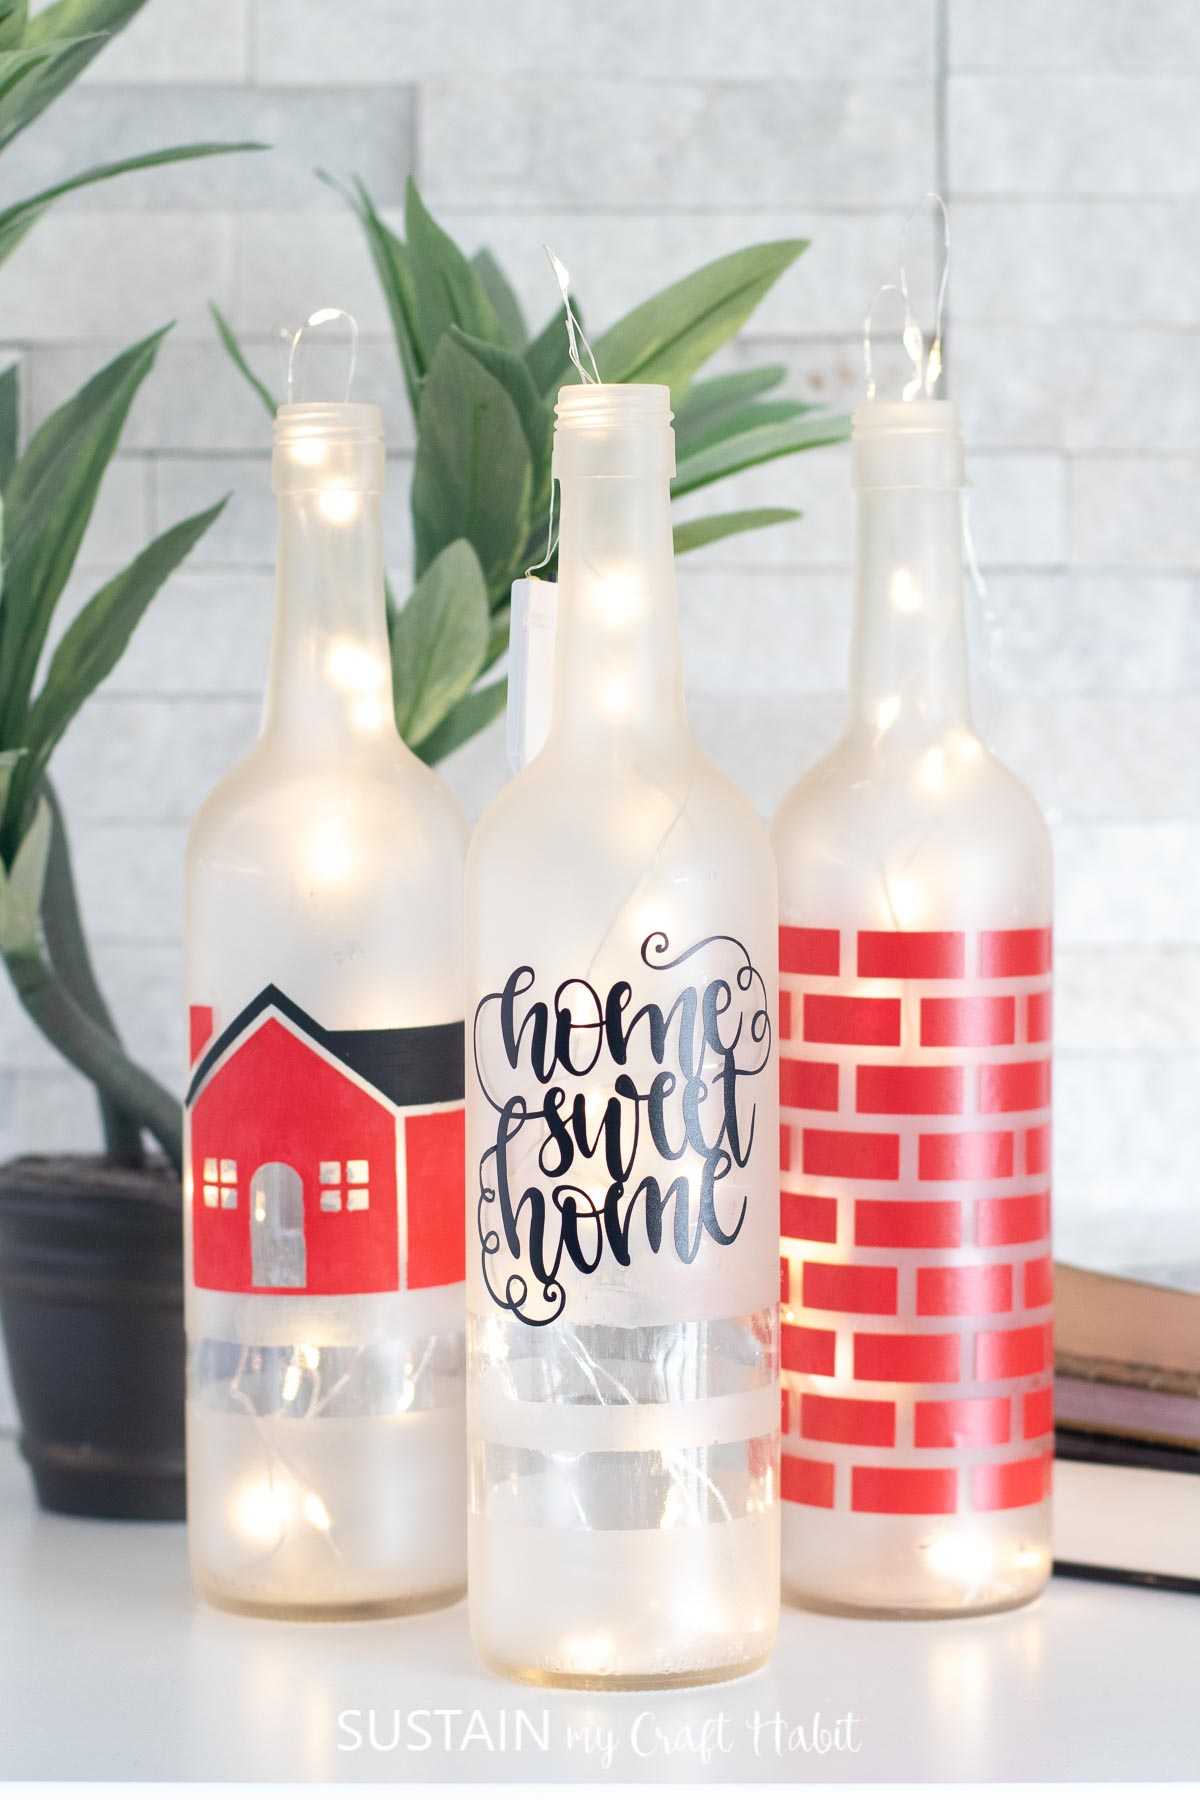 Three completed painted bottles arranged in a cluster on a white surface. Lit twinkle lights are eluminating the frosted bottles.